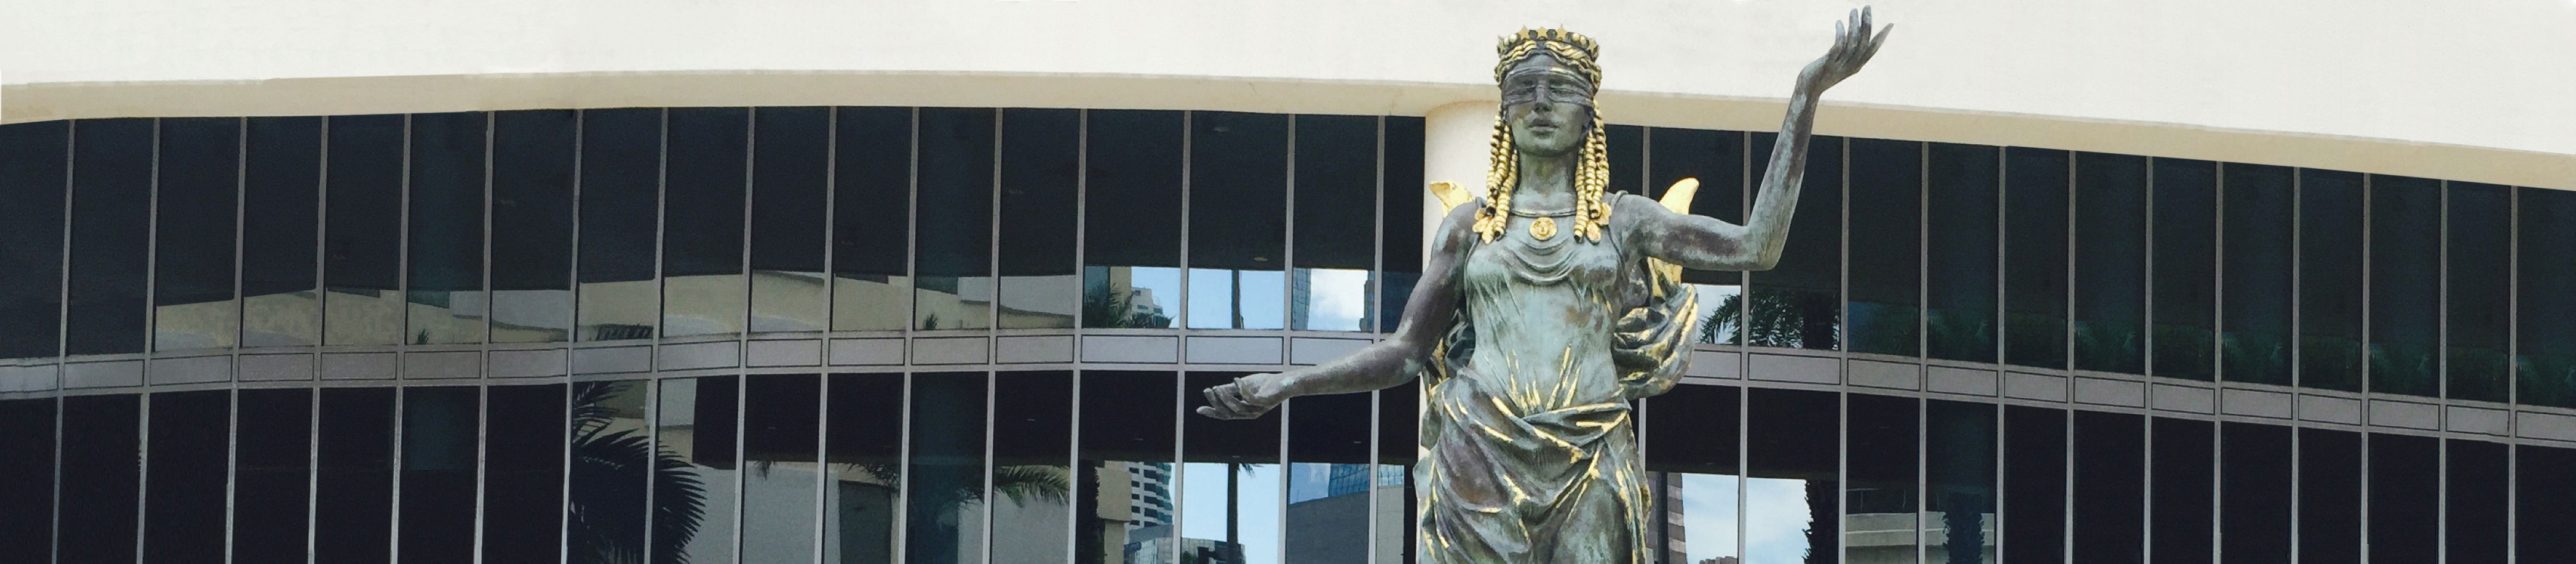 Hillsborough County Clerk Of Courts Access Circuit Court Florida Probate Division Ssn Lade Justice The Statue In Front 13th Judicial Courthouse